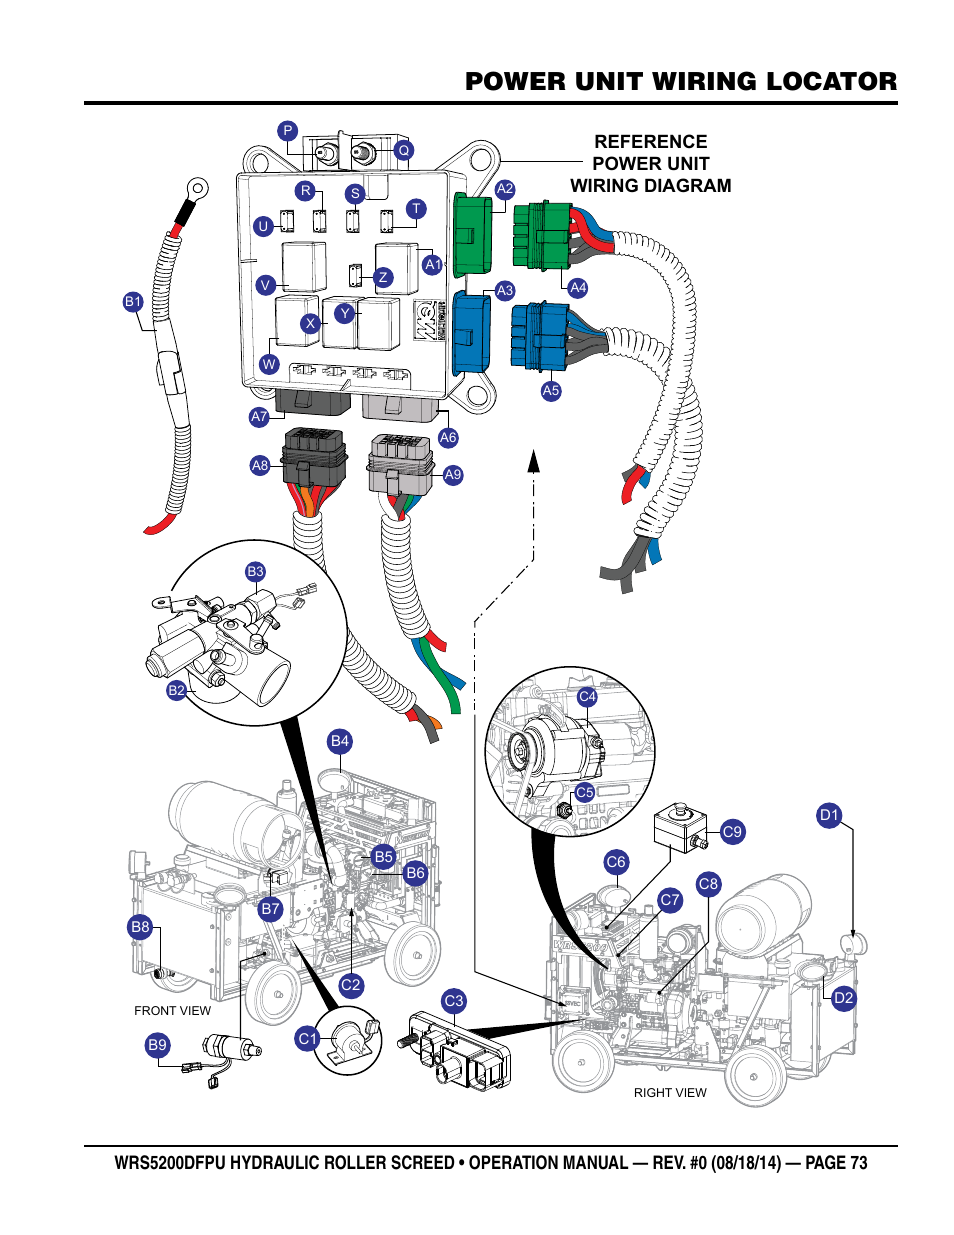 Power Unit Wiring Locator  Reference Power Unit Wiring Diagram